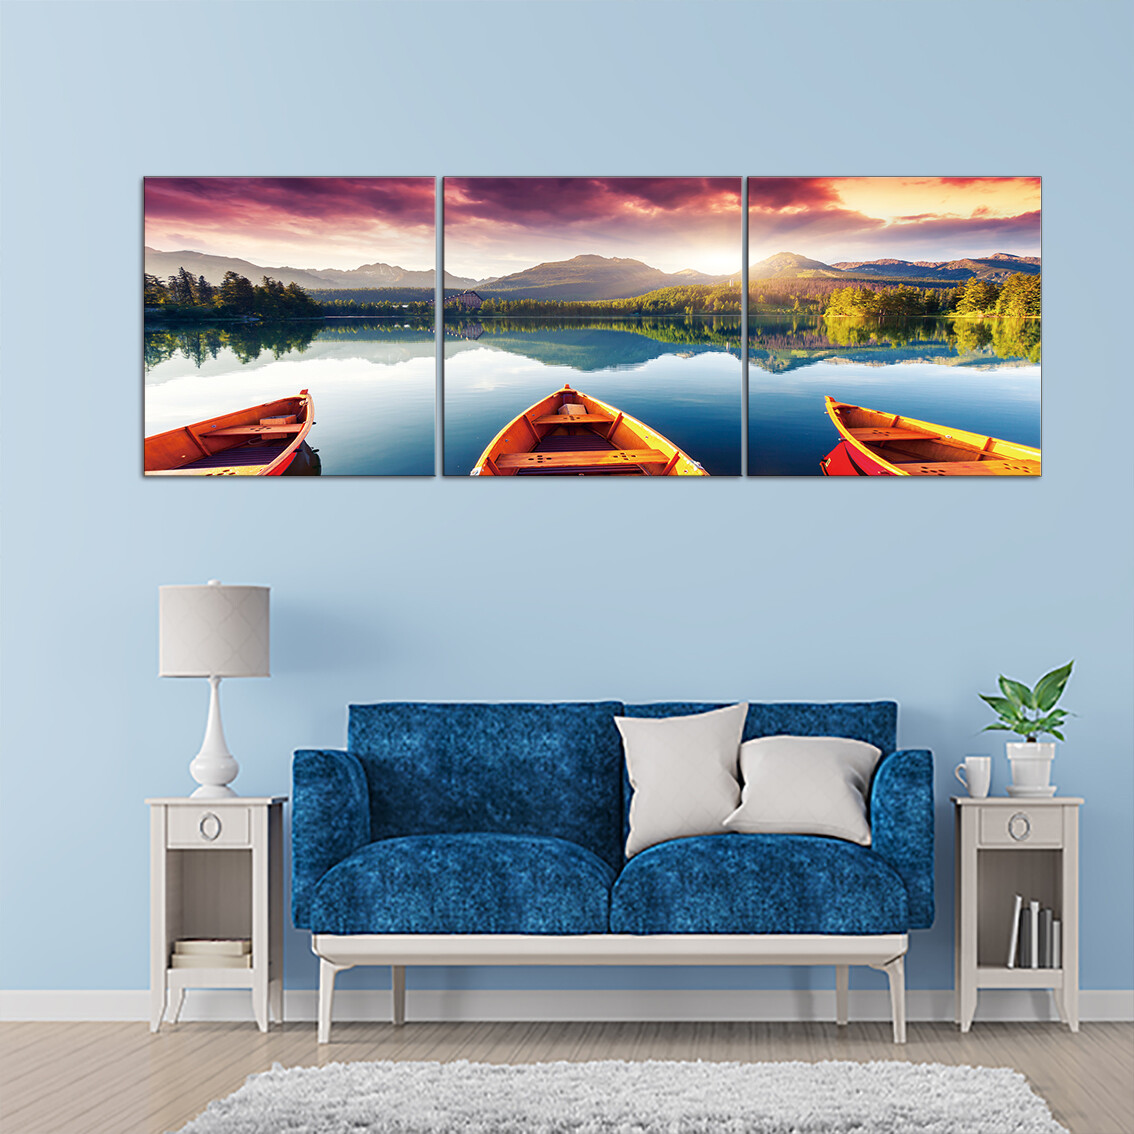 Living By The Ocean  - Modern Luxury Wall art Printed on Acrylic Glass - Frameless and Ready to Hang